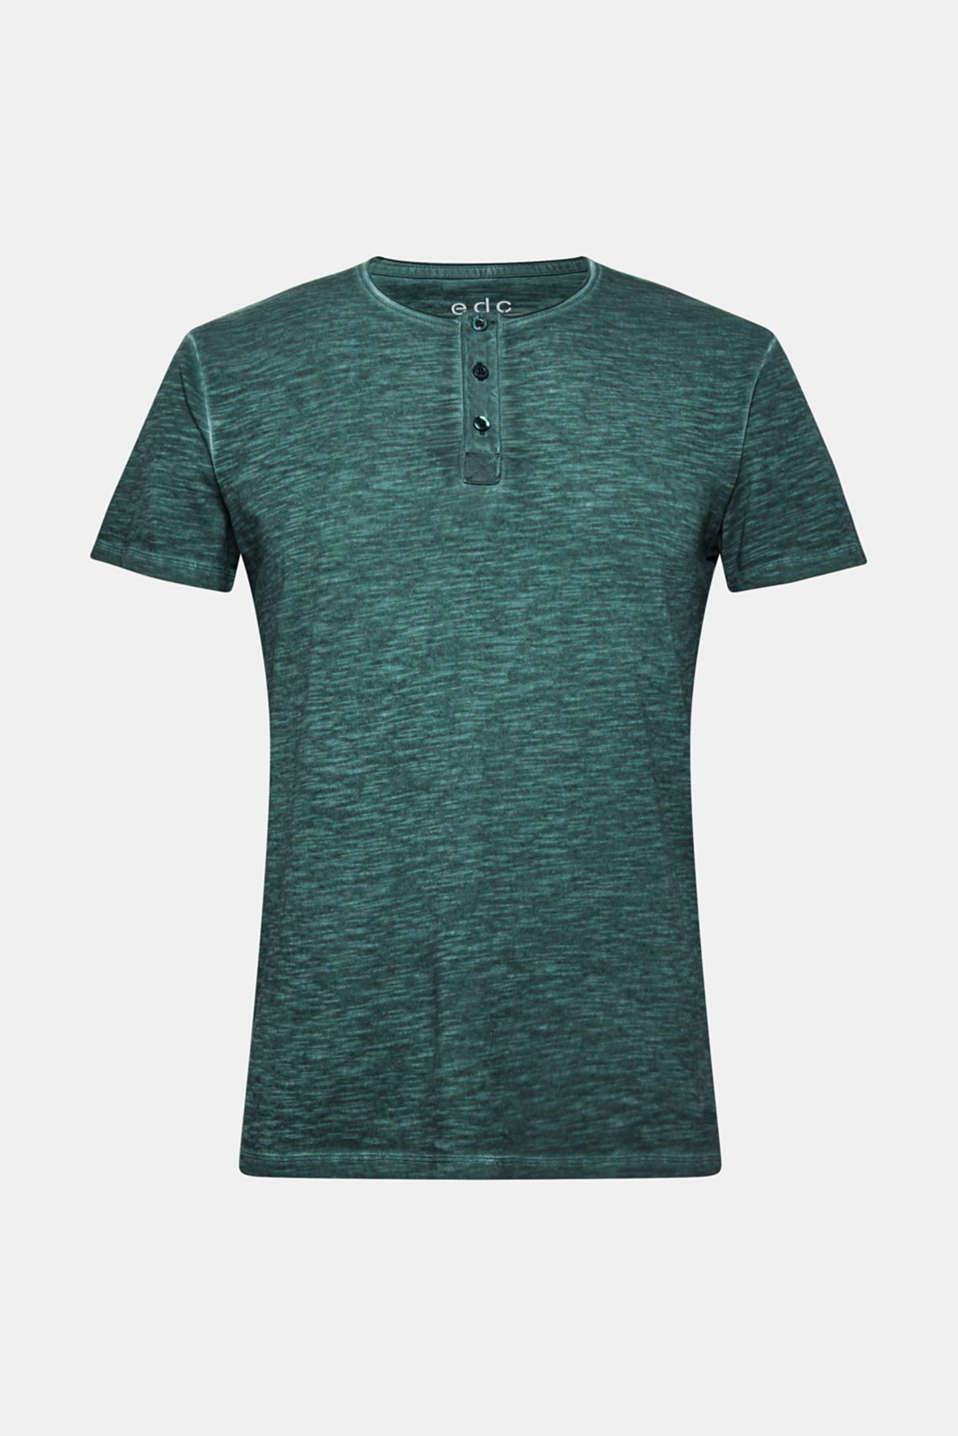 Jersey T-shirt in 100% cotton, TEAL BLUE, detail image number 6